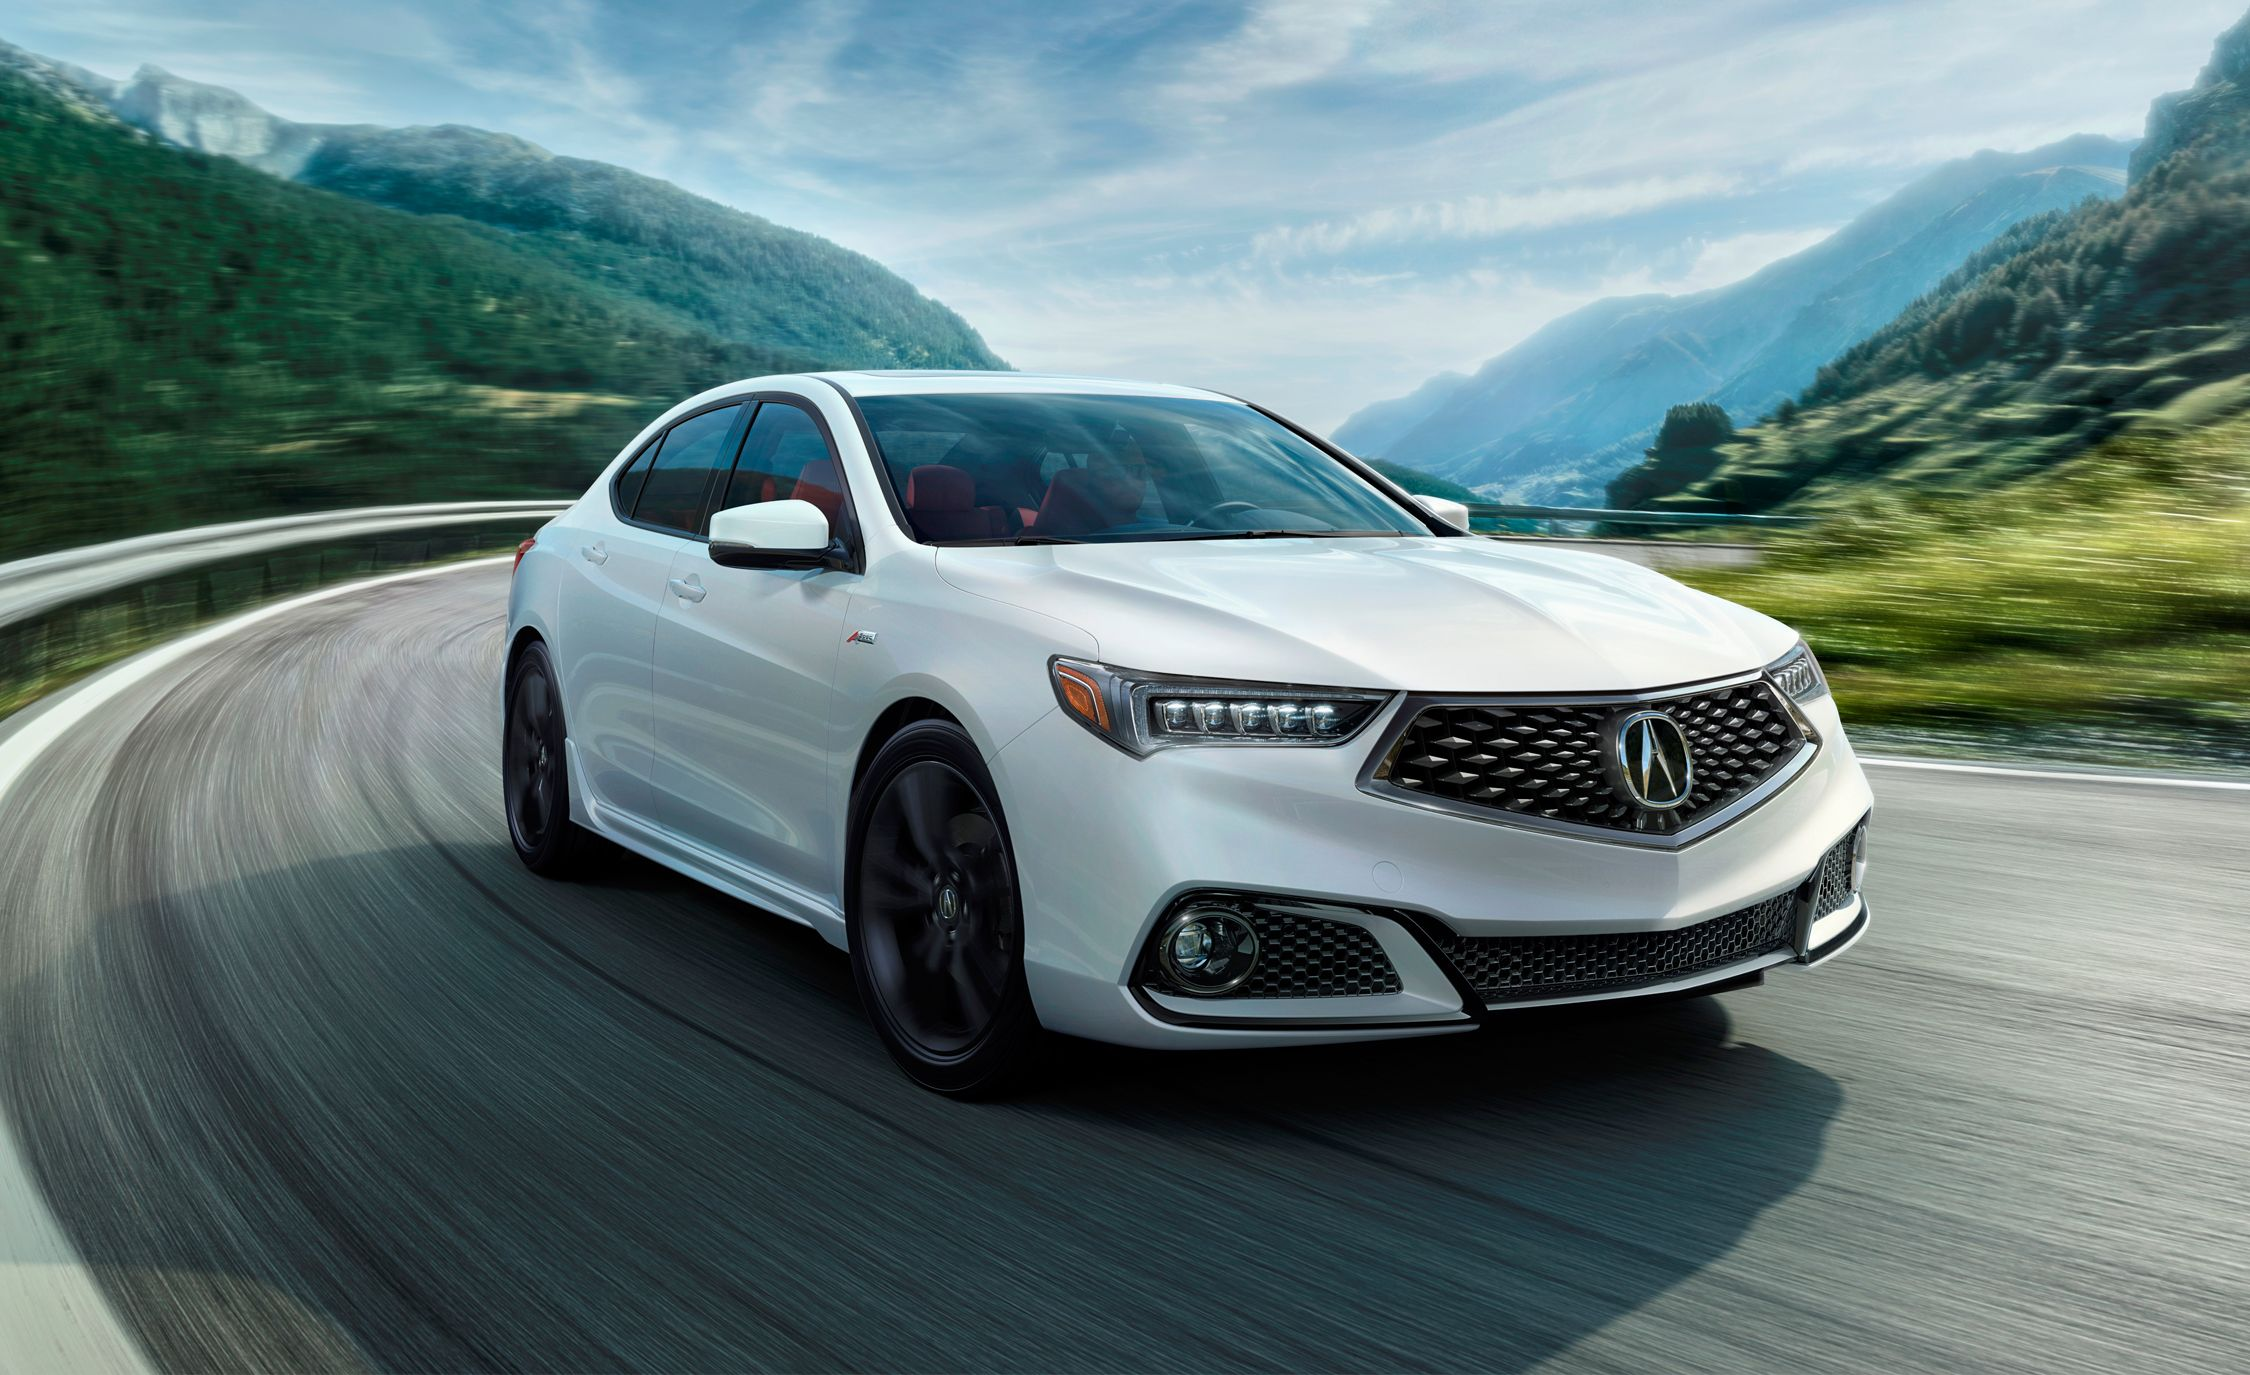 2018 Acura Tlx Photos And Info News Car And Driver